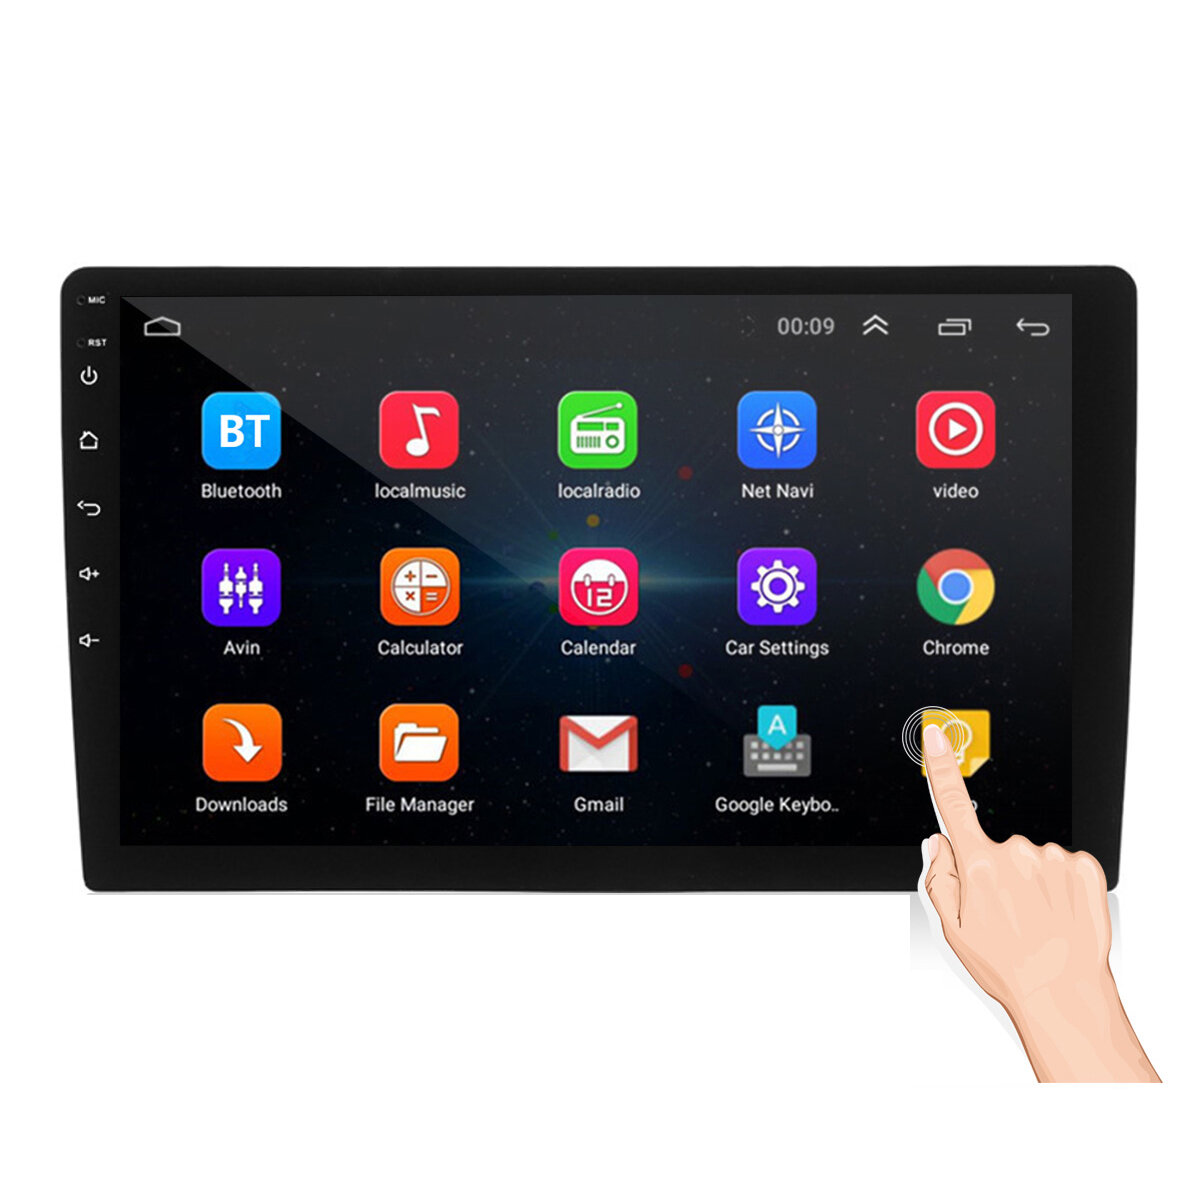 iMars 9 Inch 2DIN Android 8.1 Car Stereo Radio Quad Core 1+16G 2.5D IPS Touch Screen GPS WIFI FM bluetooth DVR